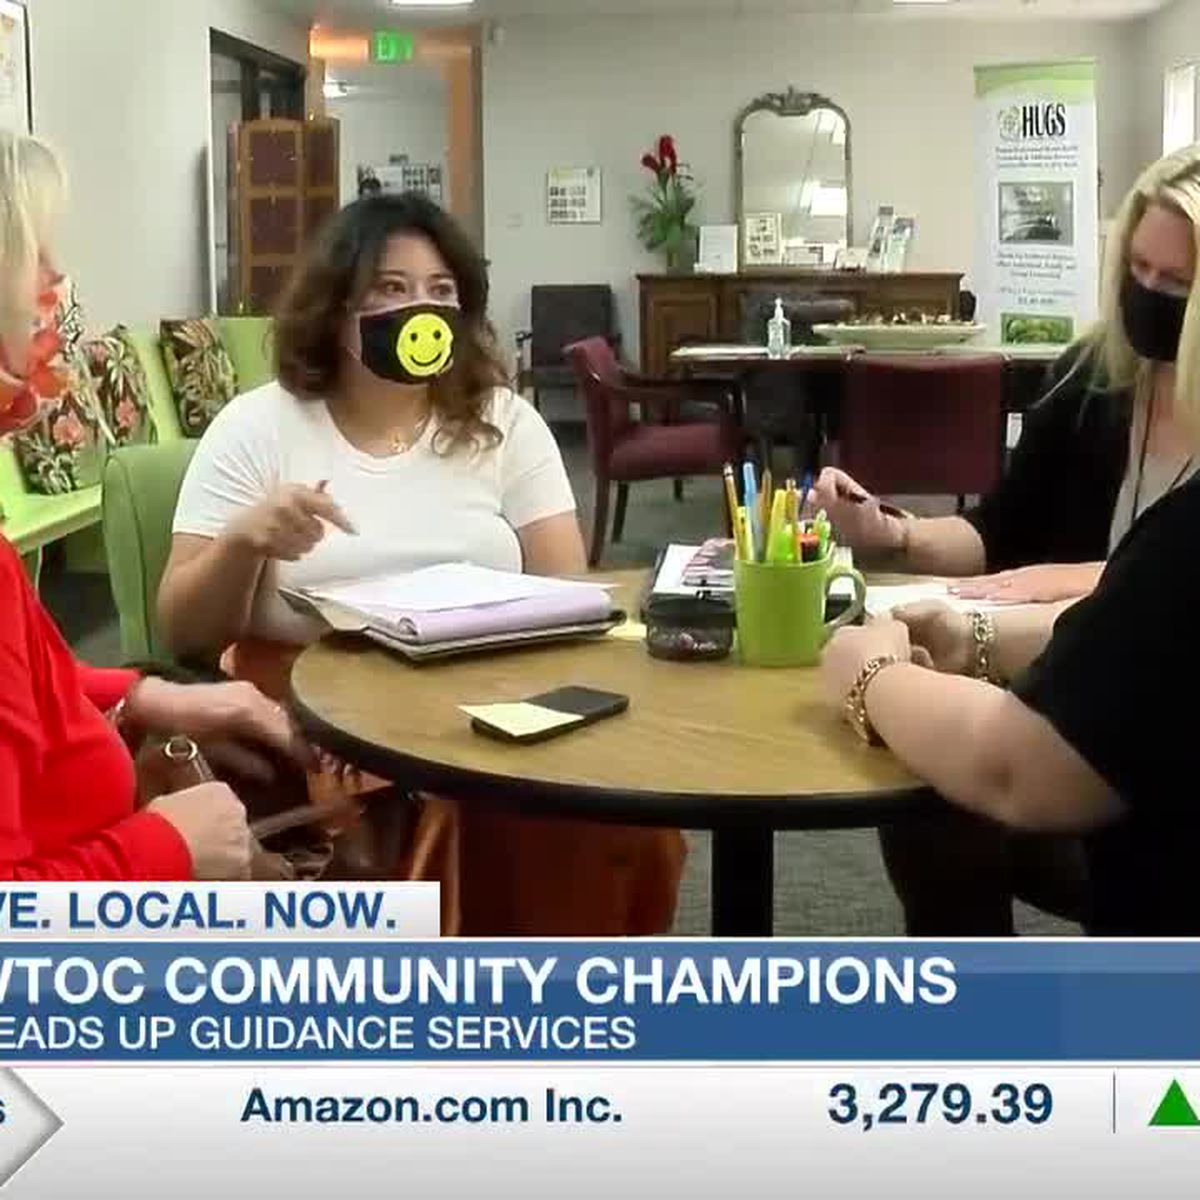 Community Champions: Heads Up Guidance Services